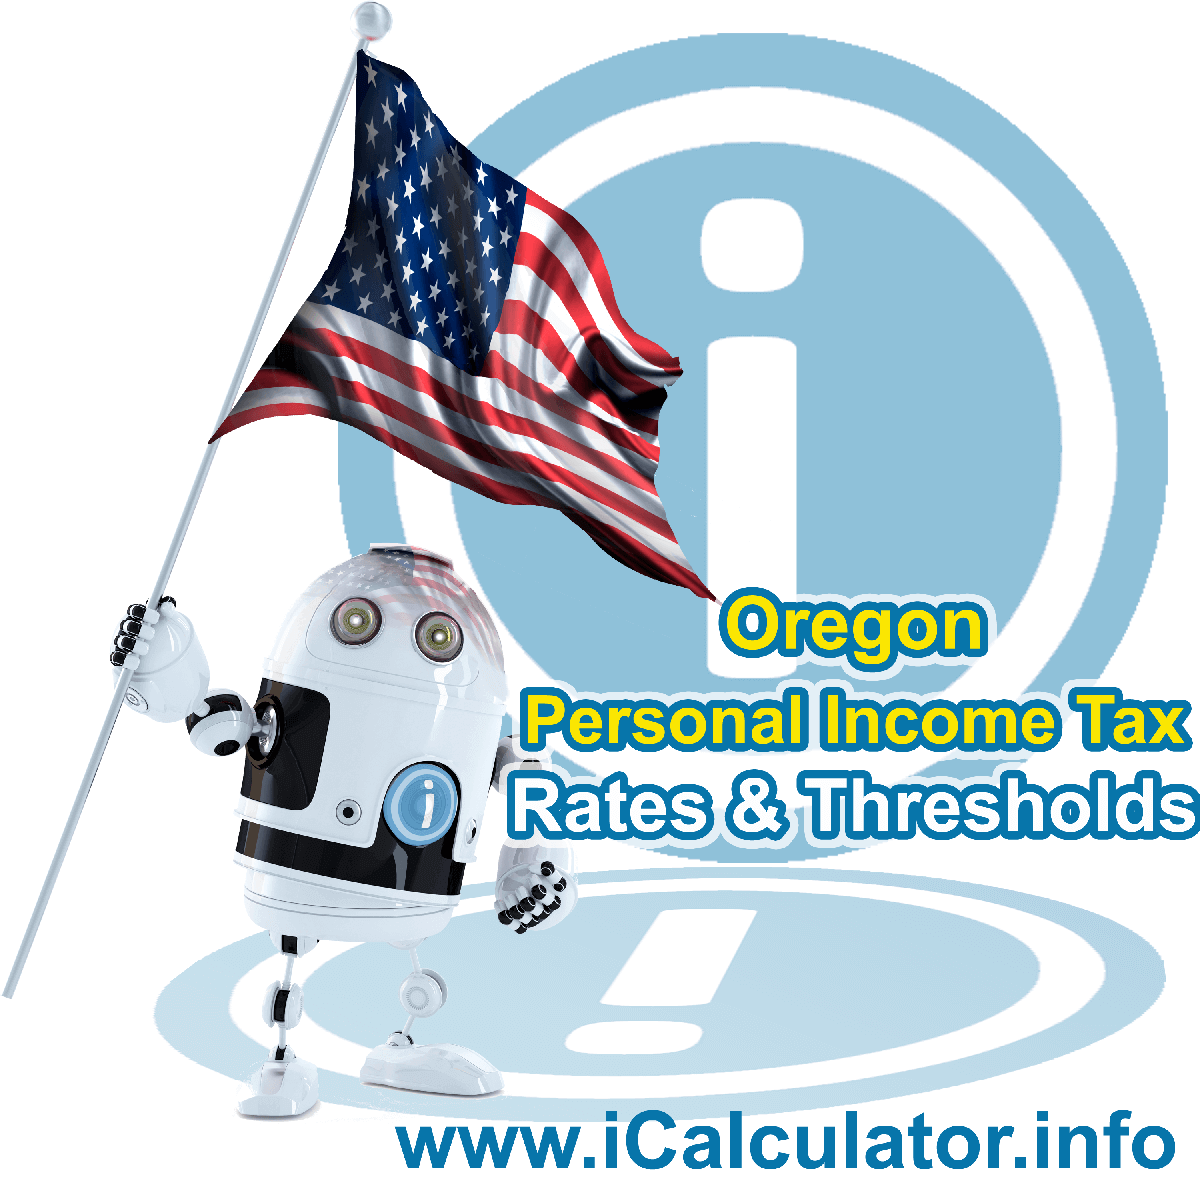 Oregon State Tax Tables 2014. This image displays details of the Oregon State Tax Tables for the 2014 tax return year which is provided in support of the 2014 US Tax Calculator